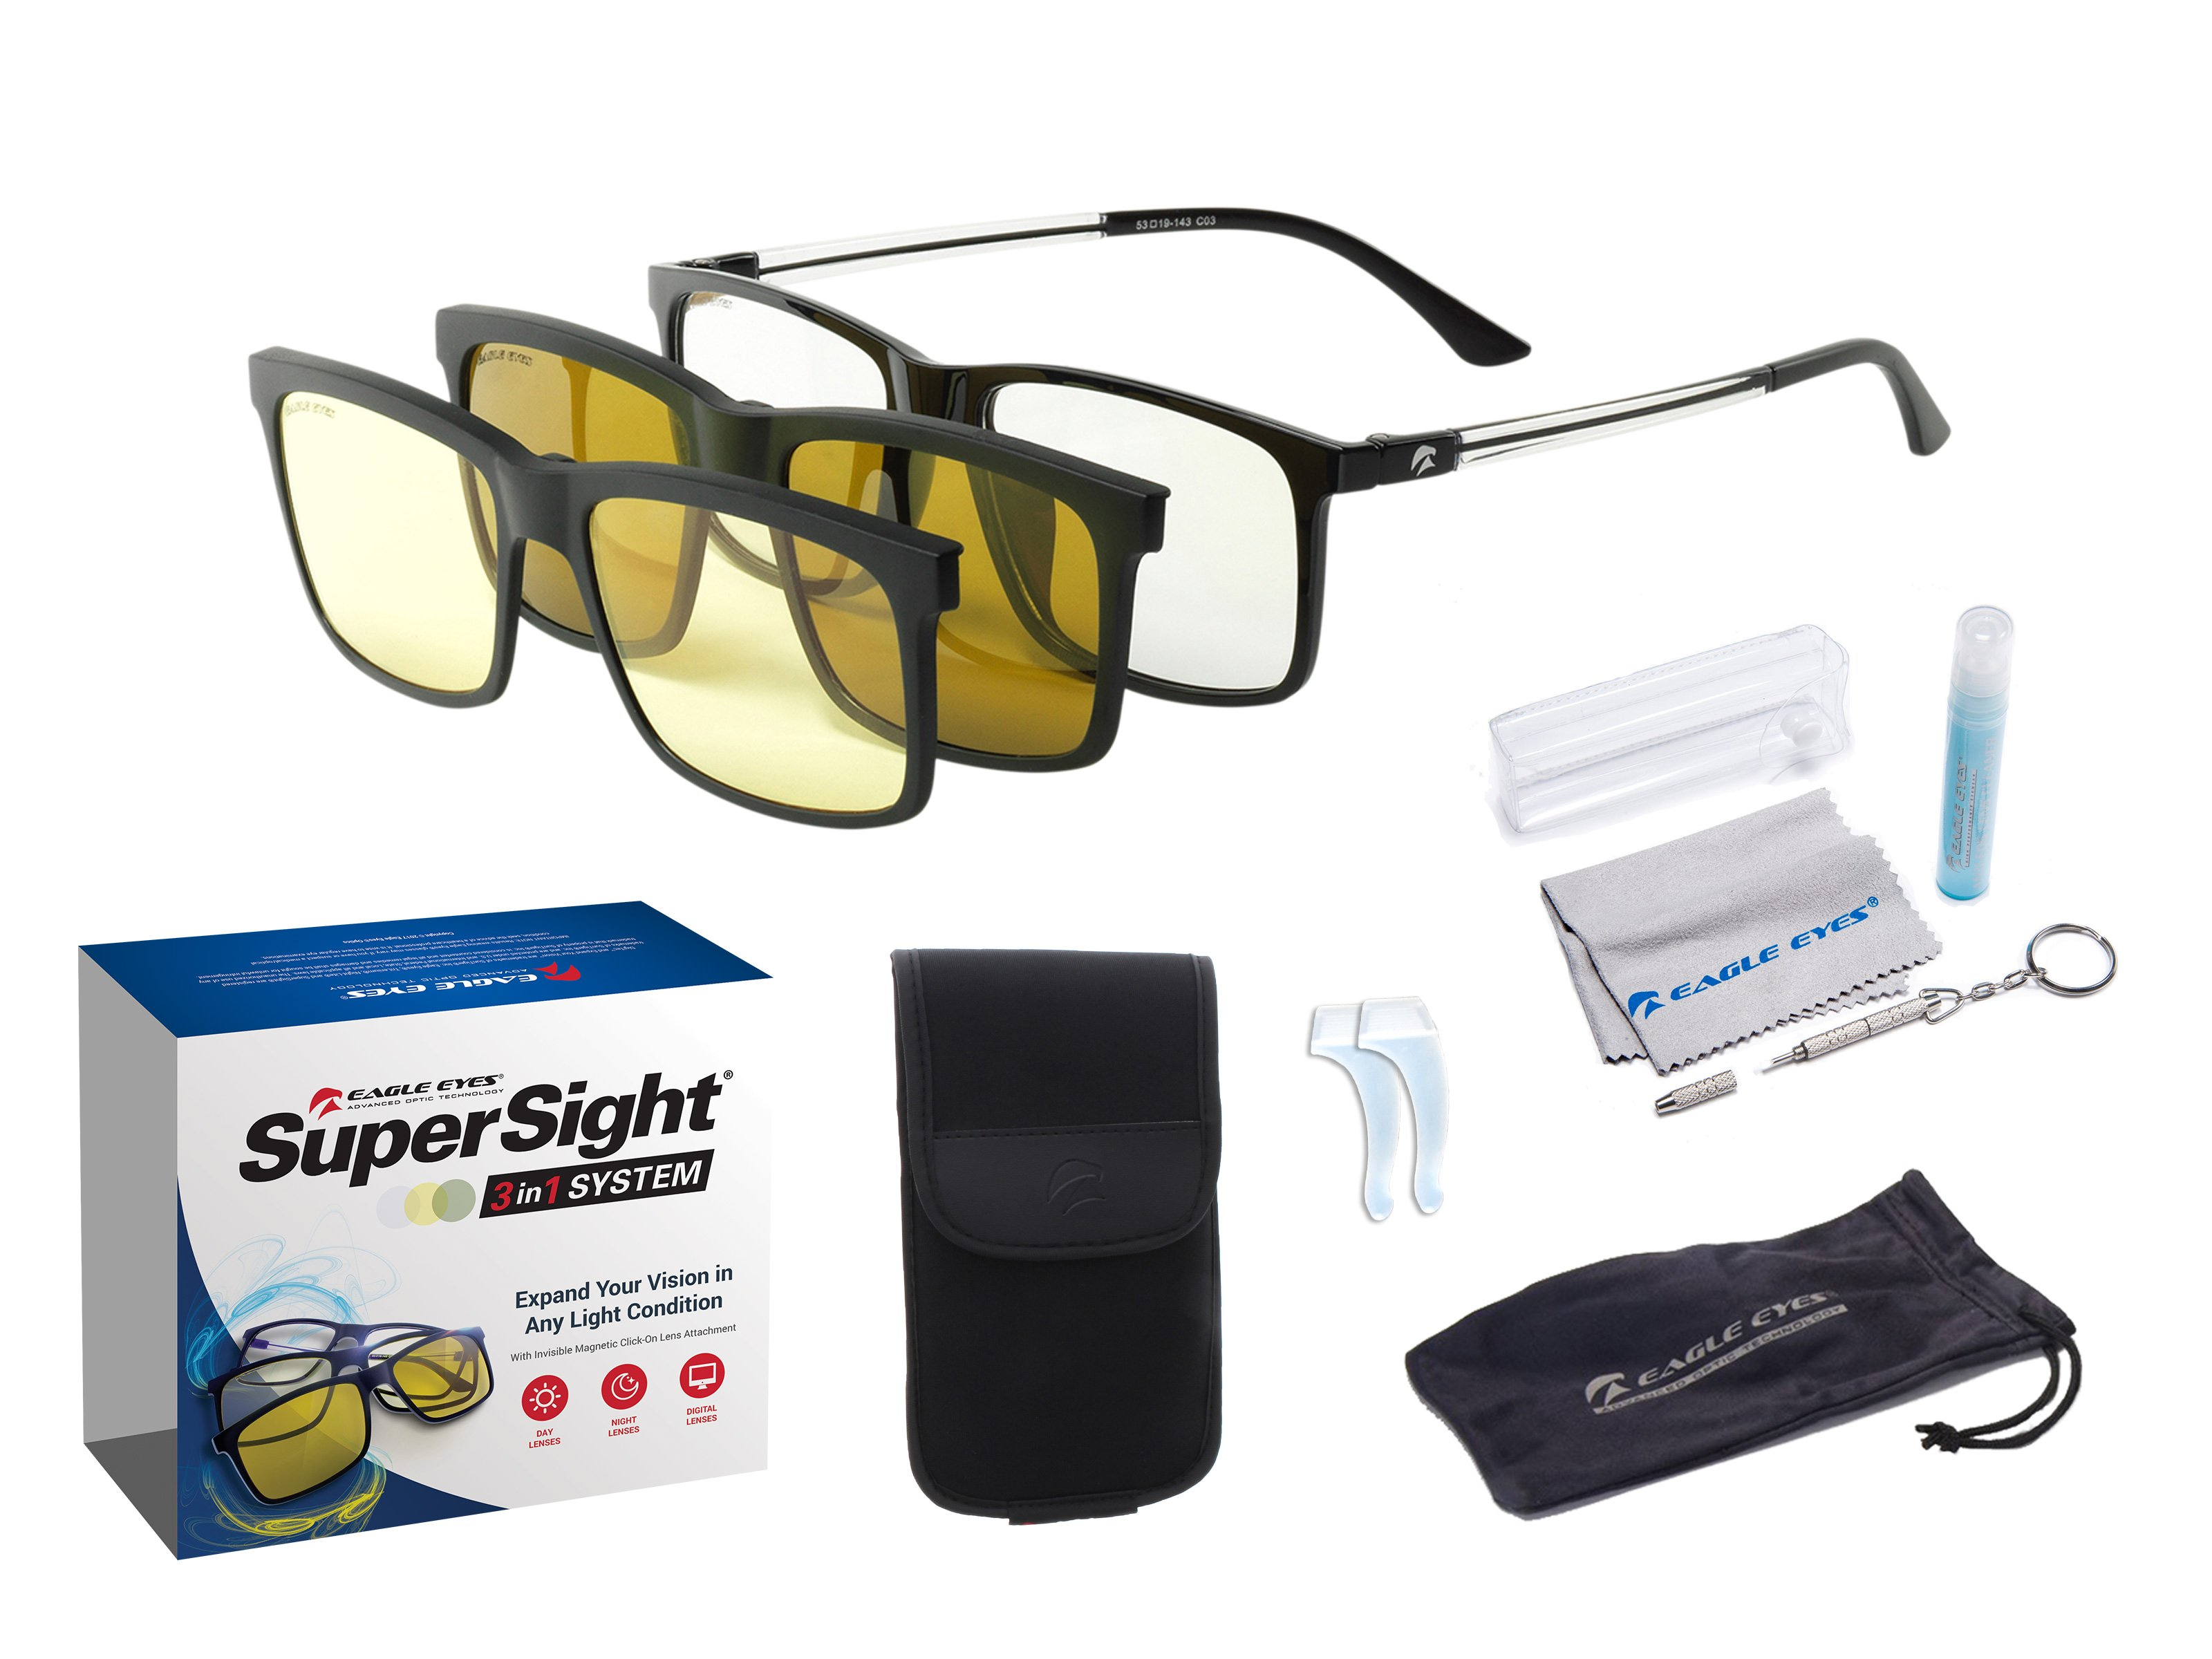 e2431fd4f5e 3in1 SuperSight Magnetic Eyeware System (Gear) Review